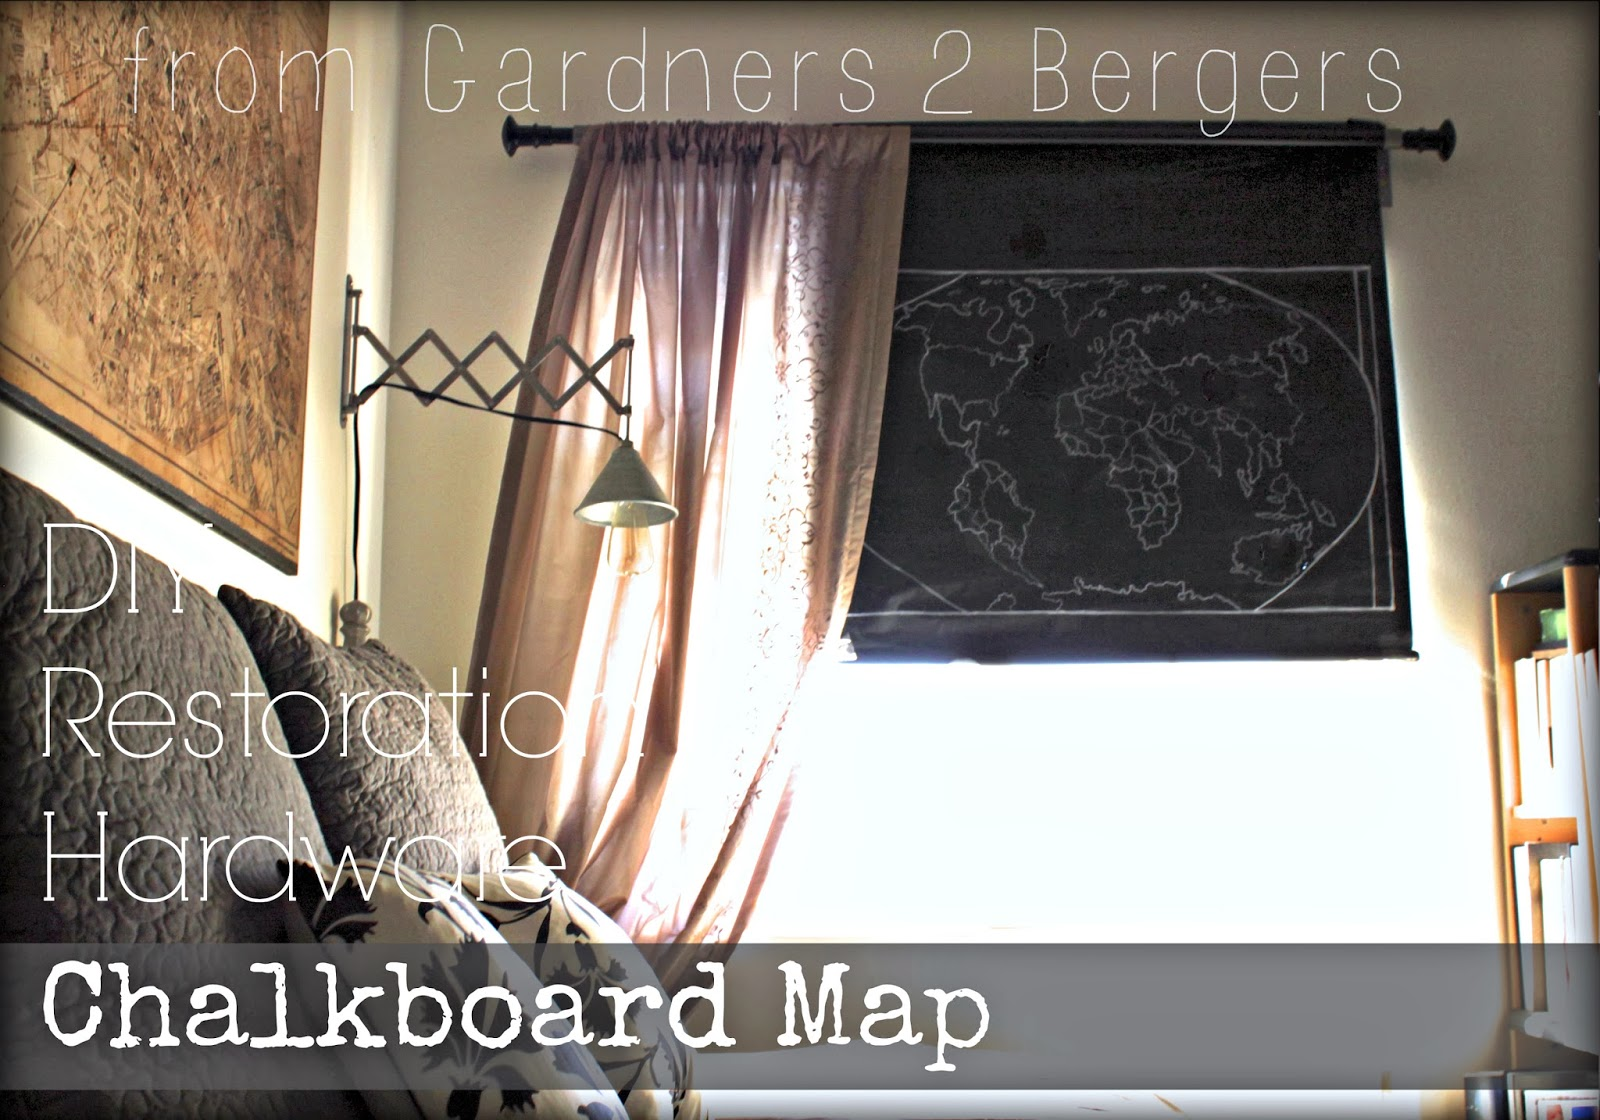 DIY-Restoration-Hardware-Chalkboard-Roller-Map